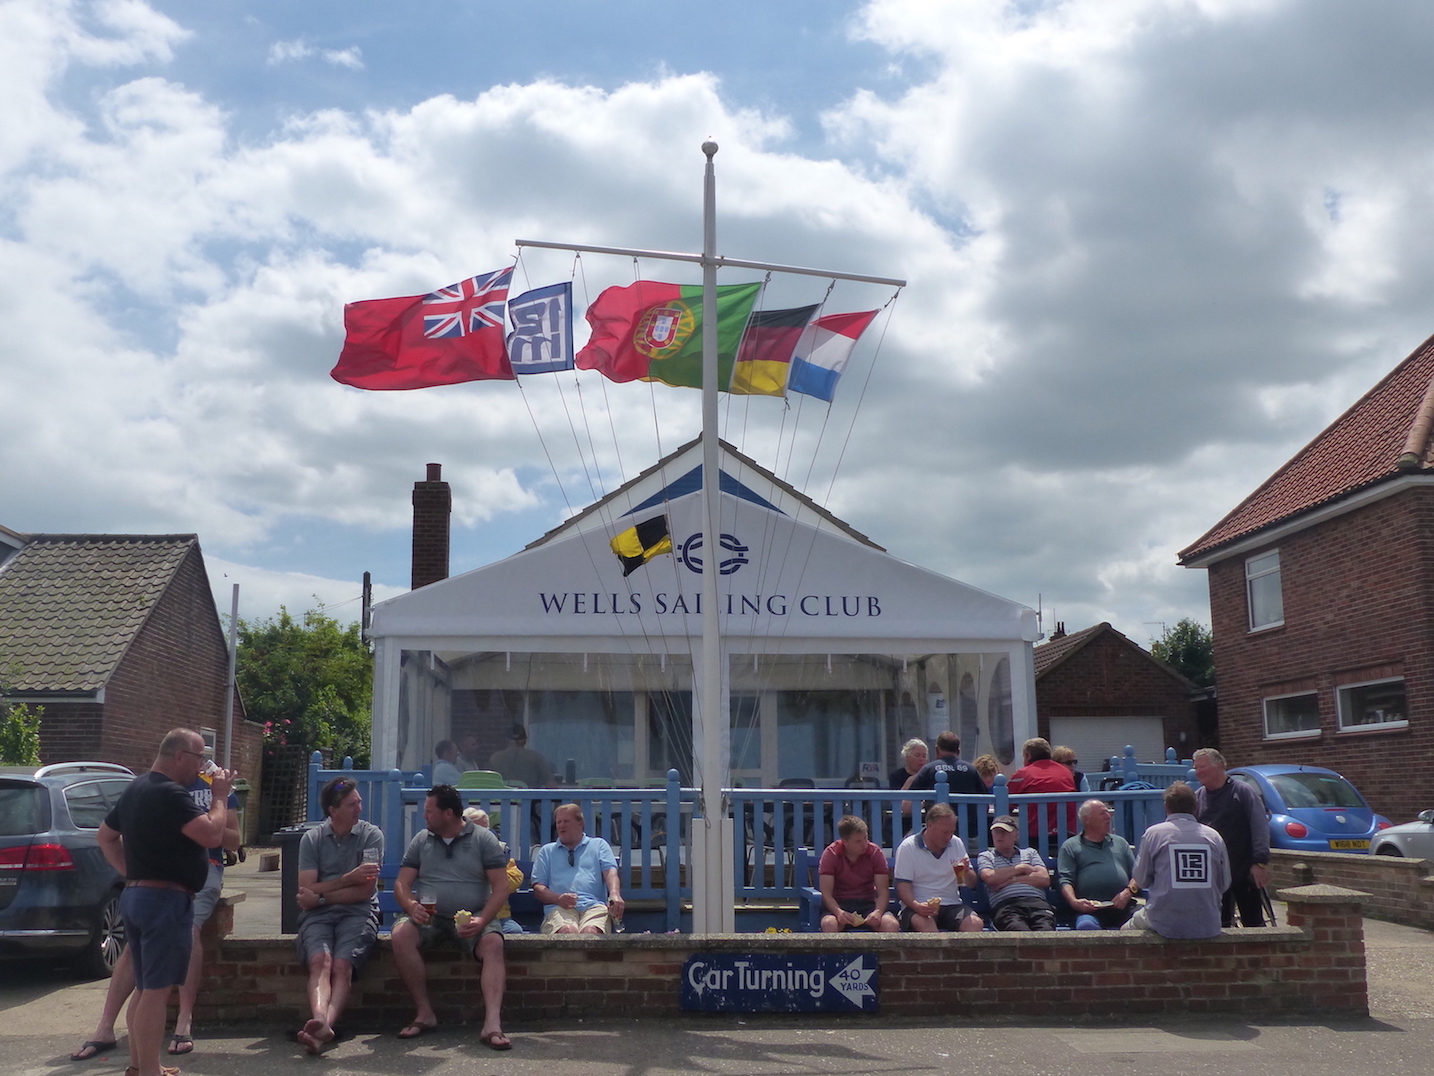 WSC clubhouse with flags flying